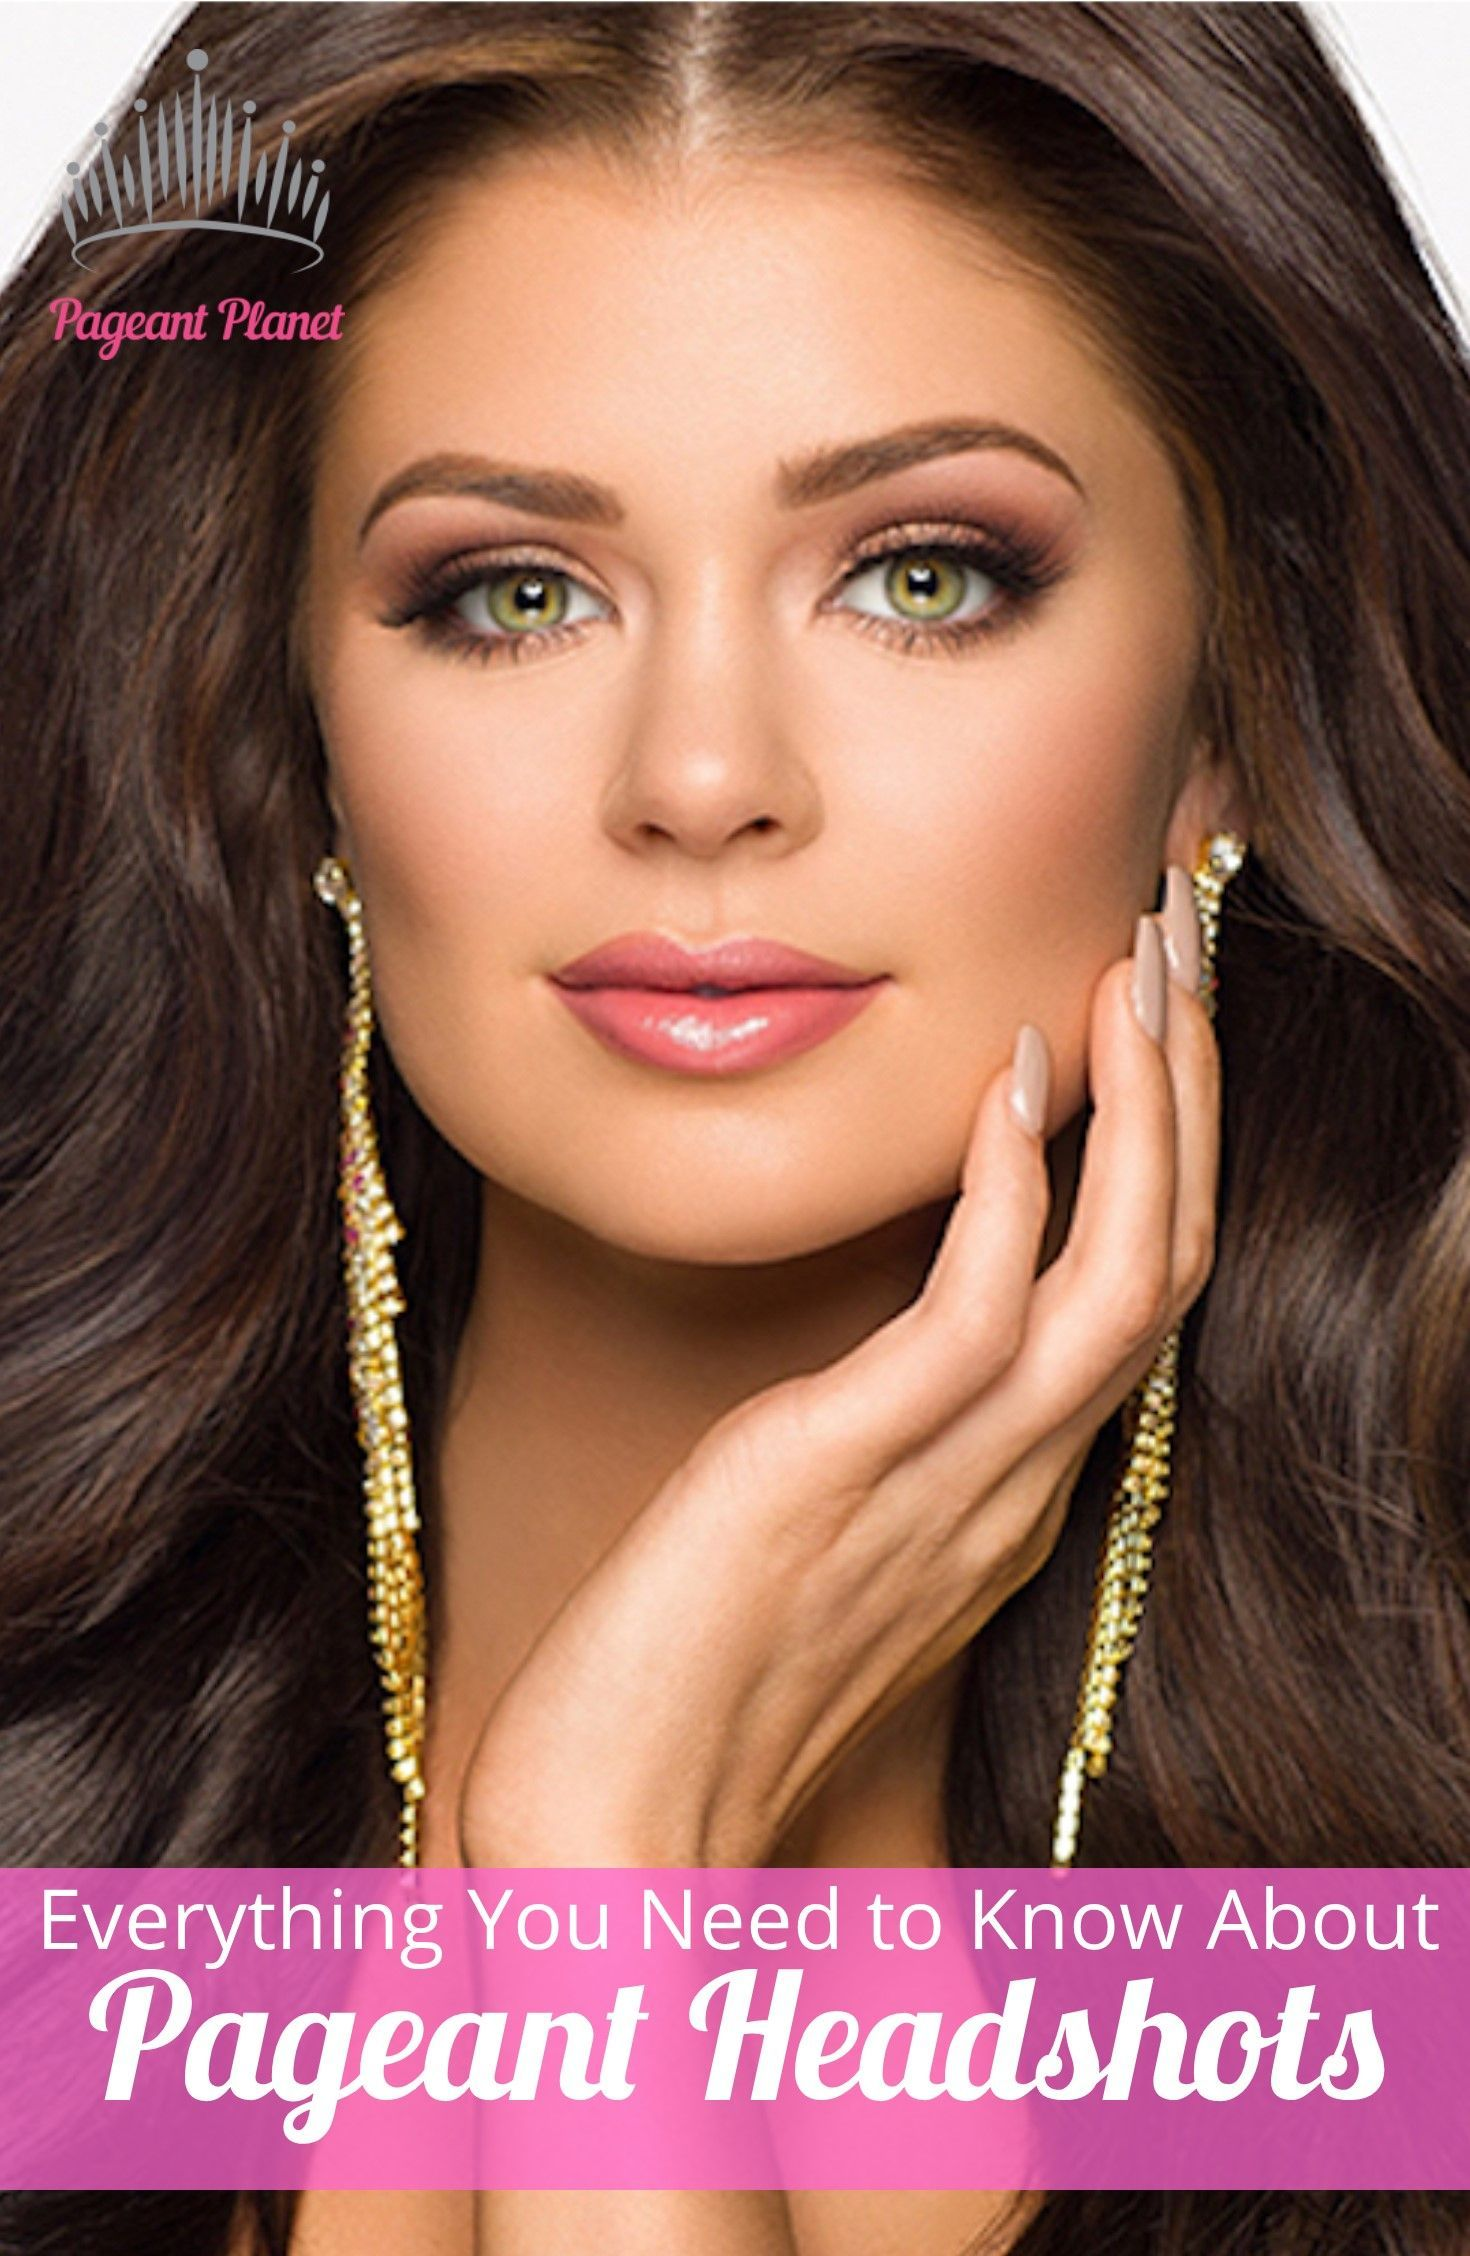 Everything You Need to Know About Pageant Headshots